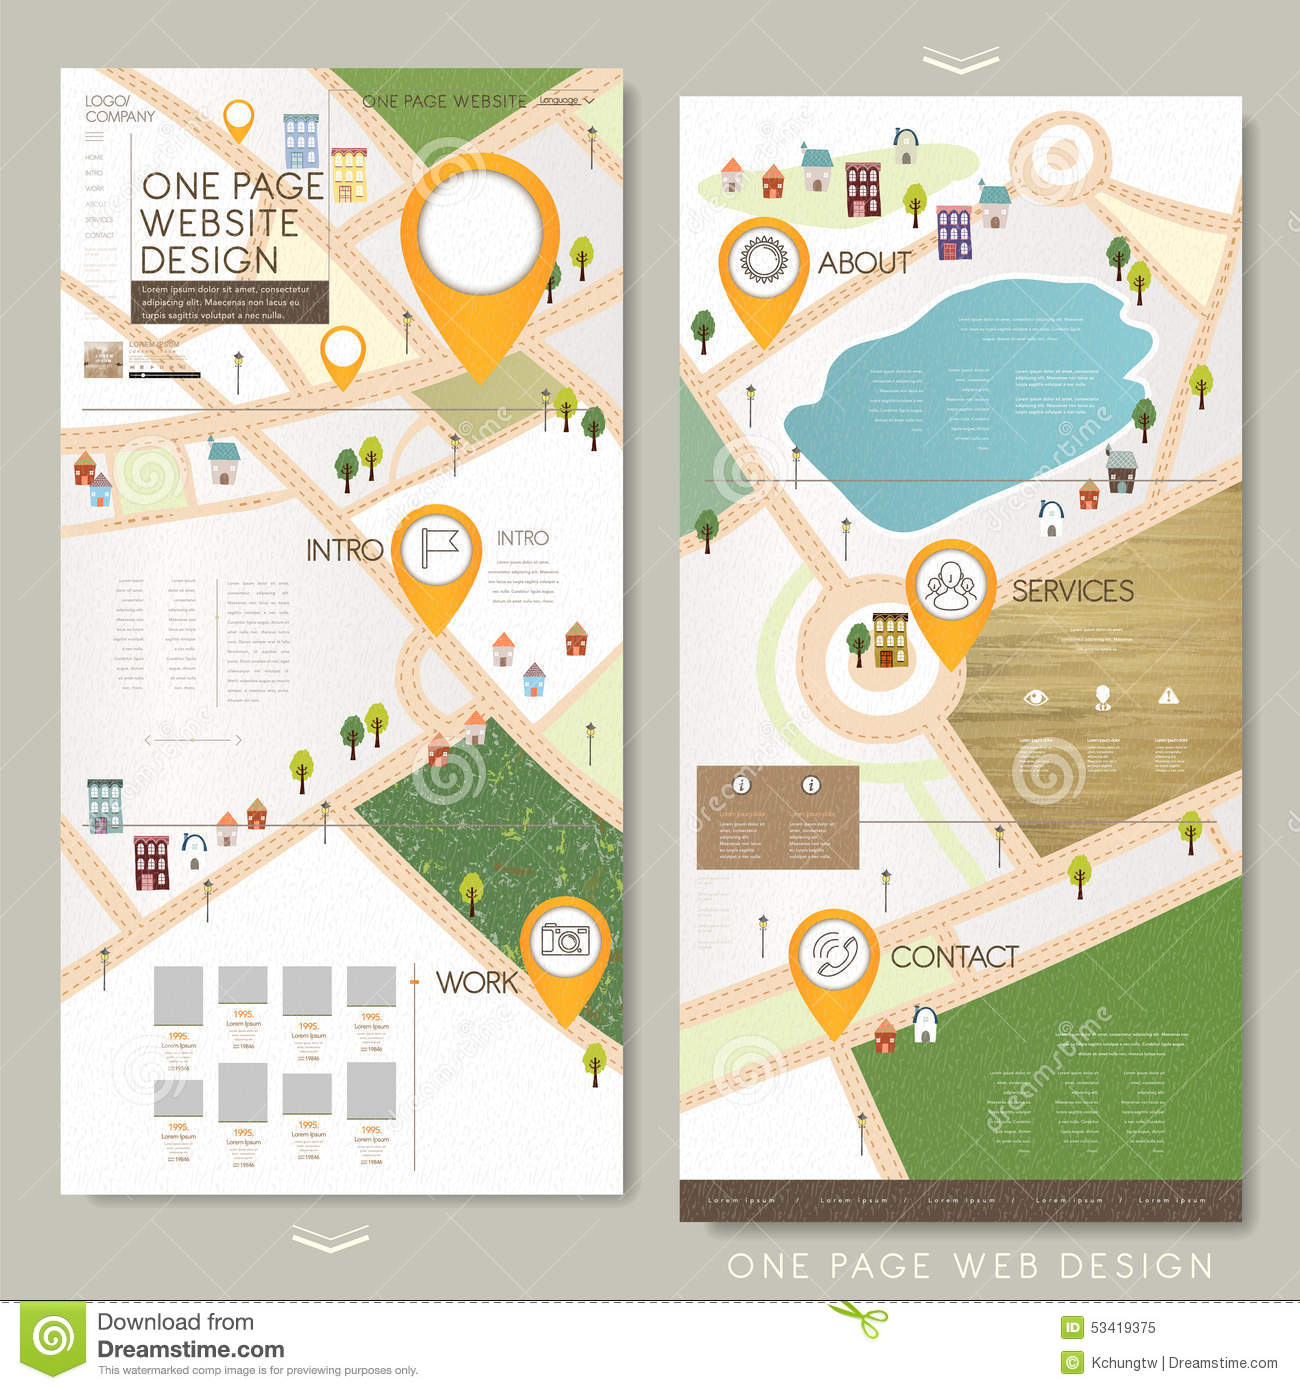 Site Map Template: Childlike One Page Website Template Design Stock Vector